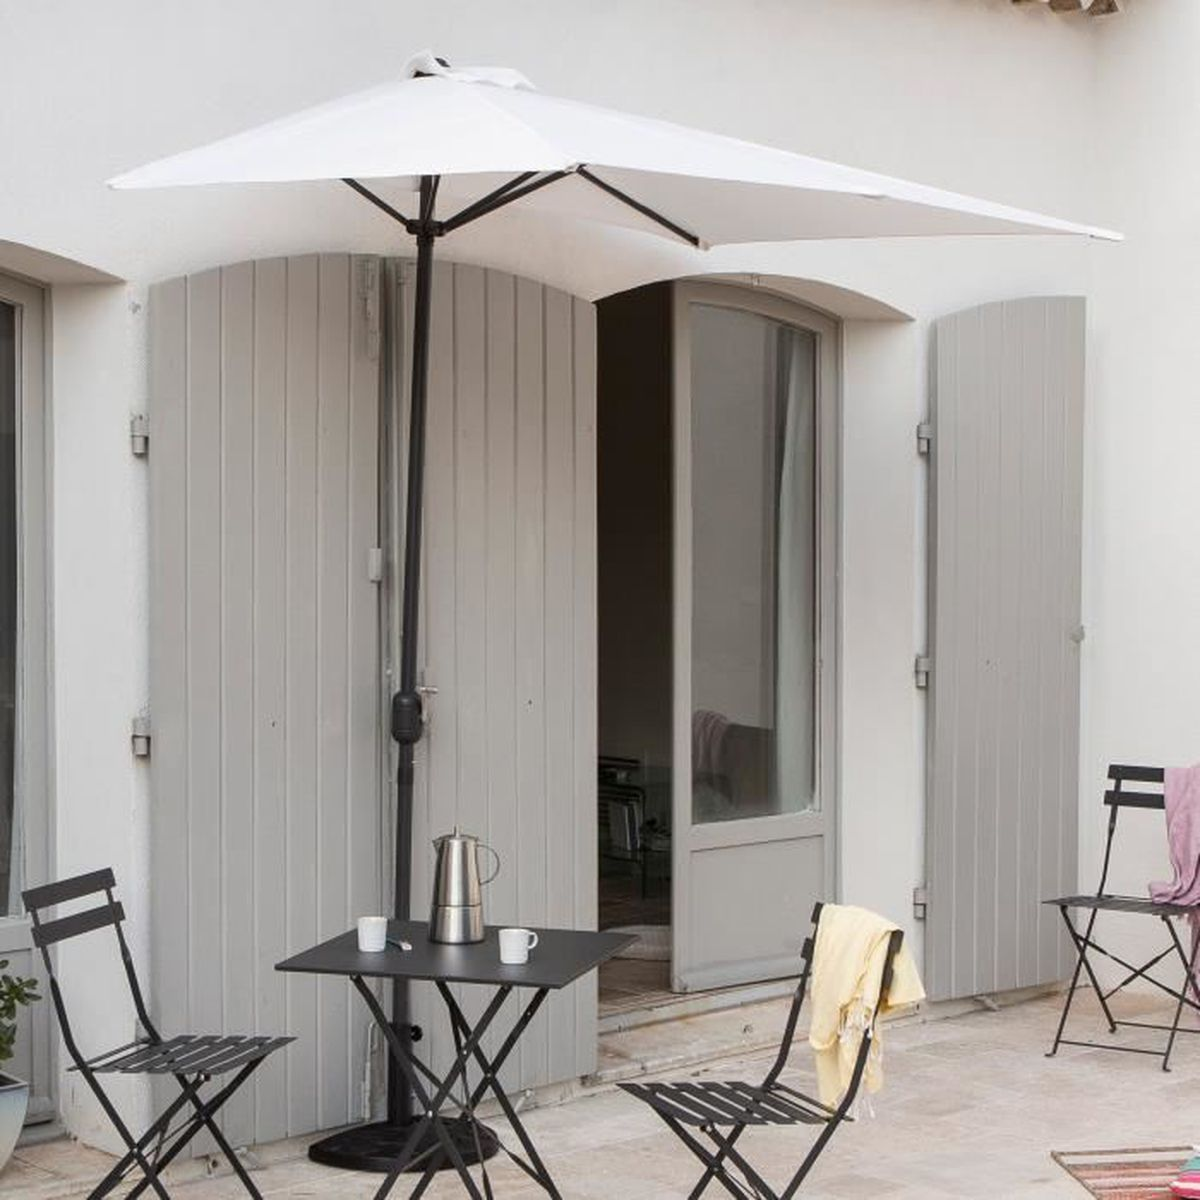 demi parasol de balcon rectangulaire en aluminium avec manivelle 230x130cm circle blanc sans. Black Bedroom Furniture Sets. Home Design Ideas